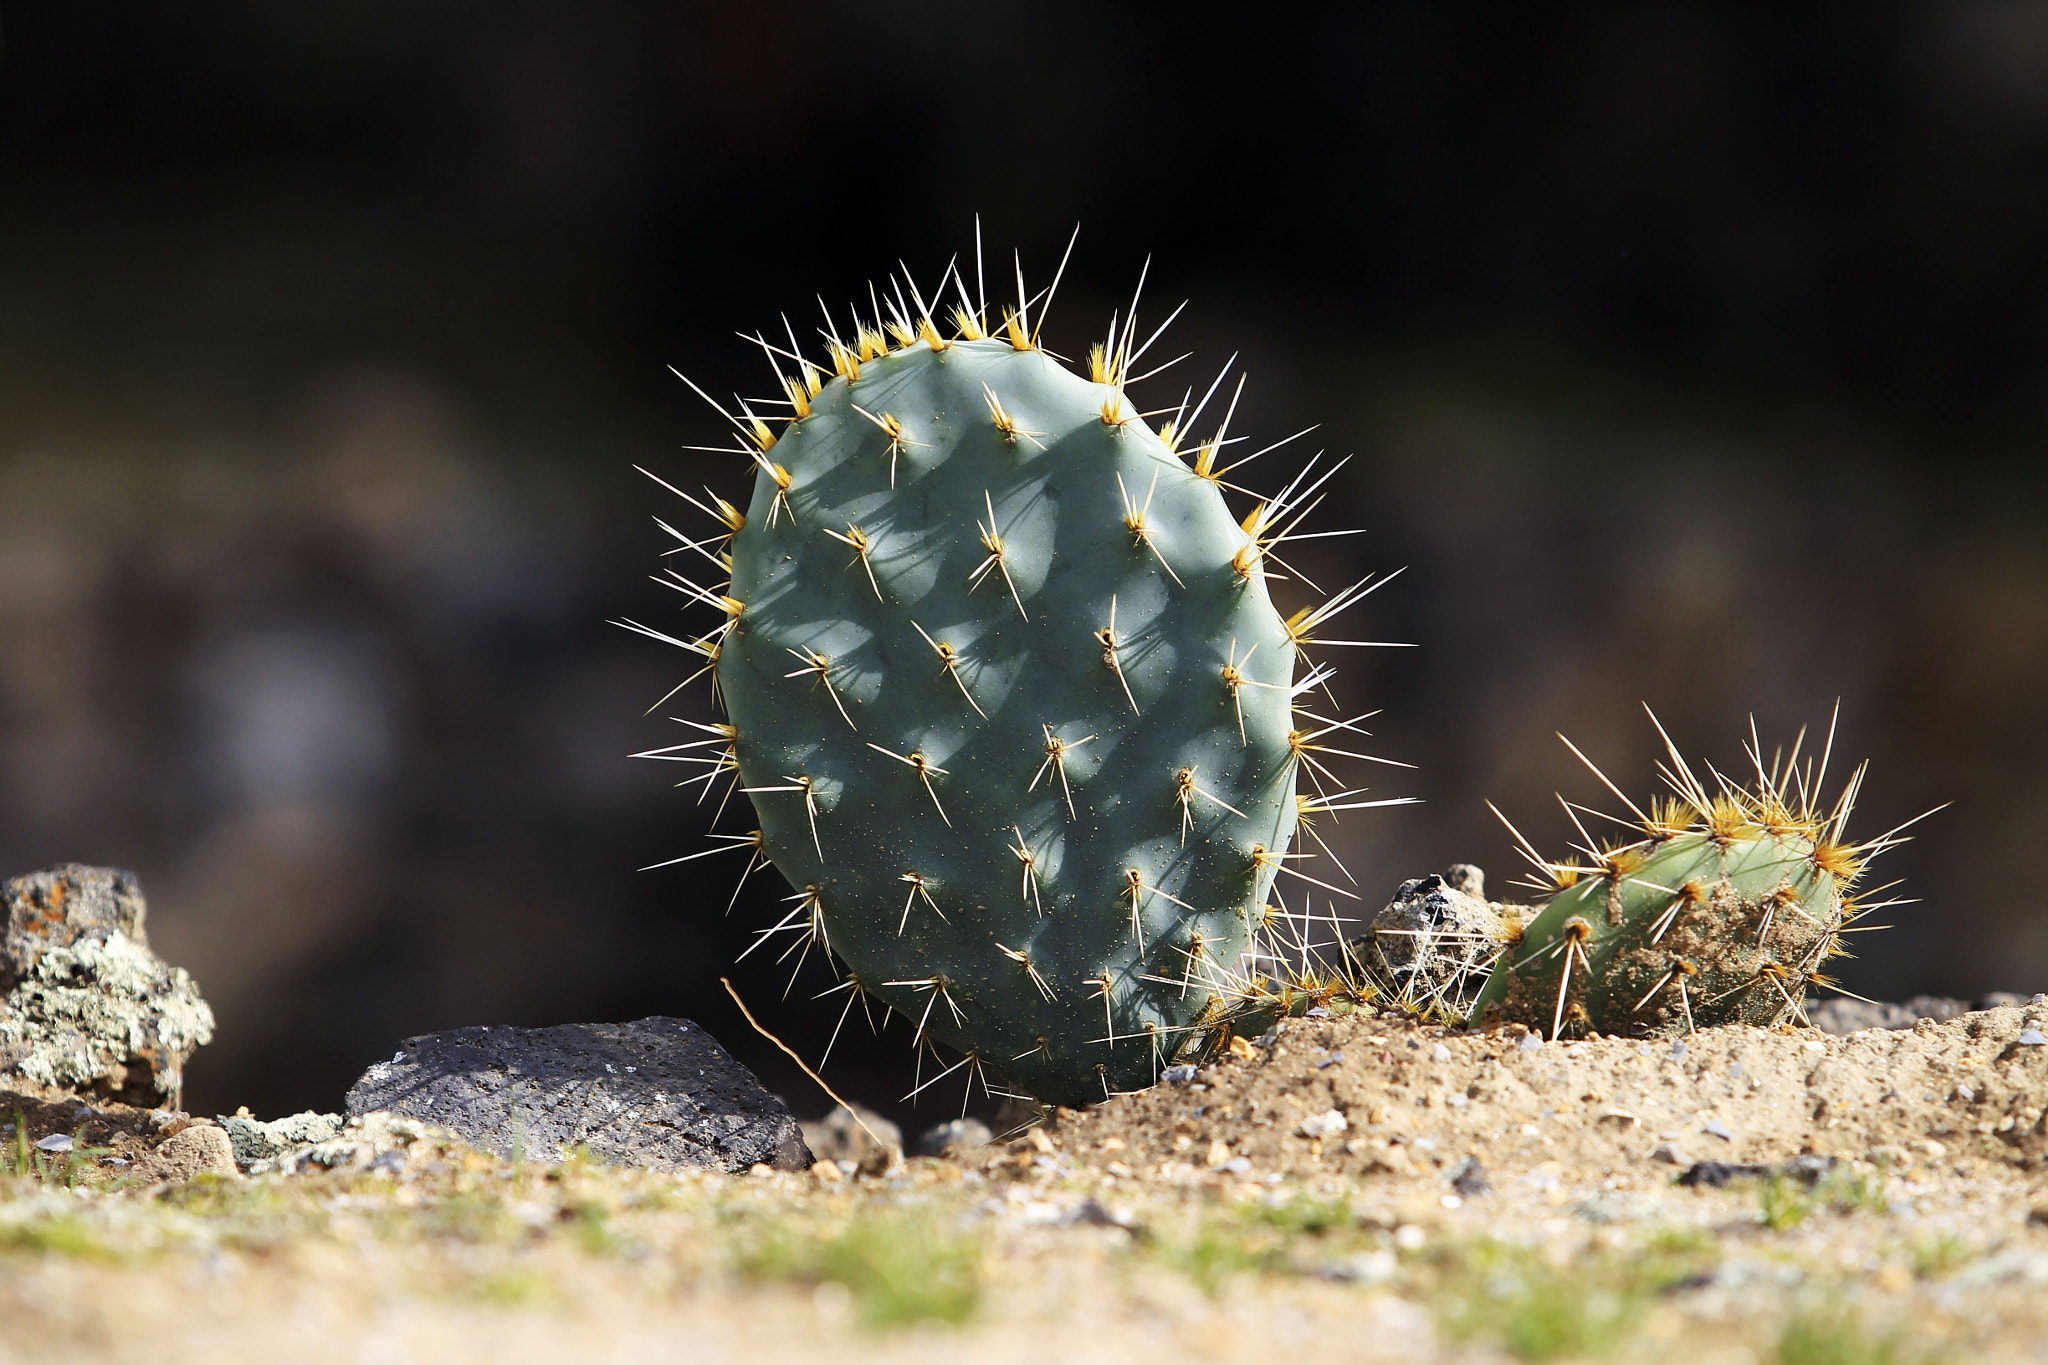 Photograph Special Cactus by Cristobal Garciaferro Rubio on 500px